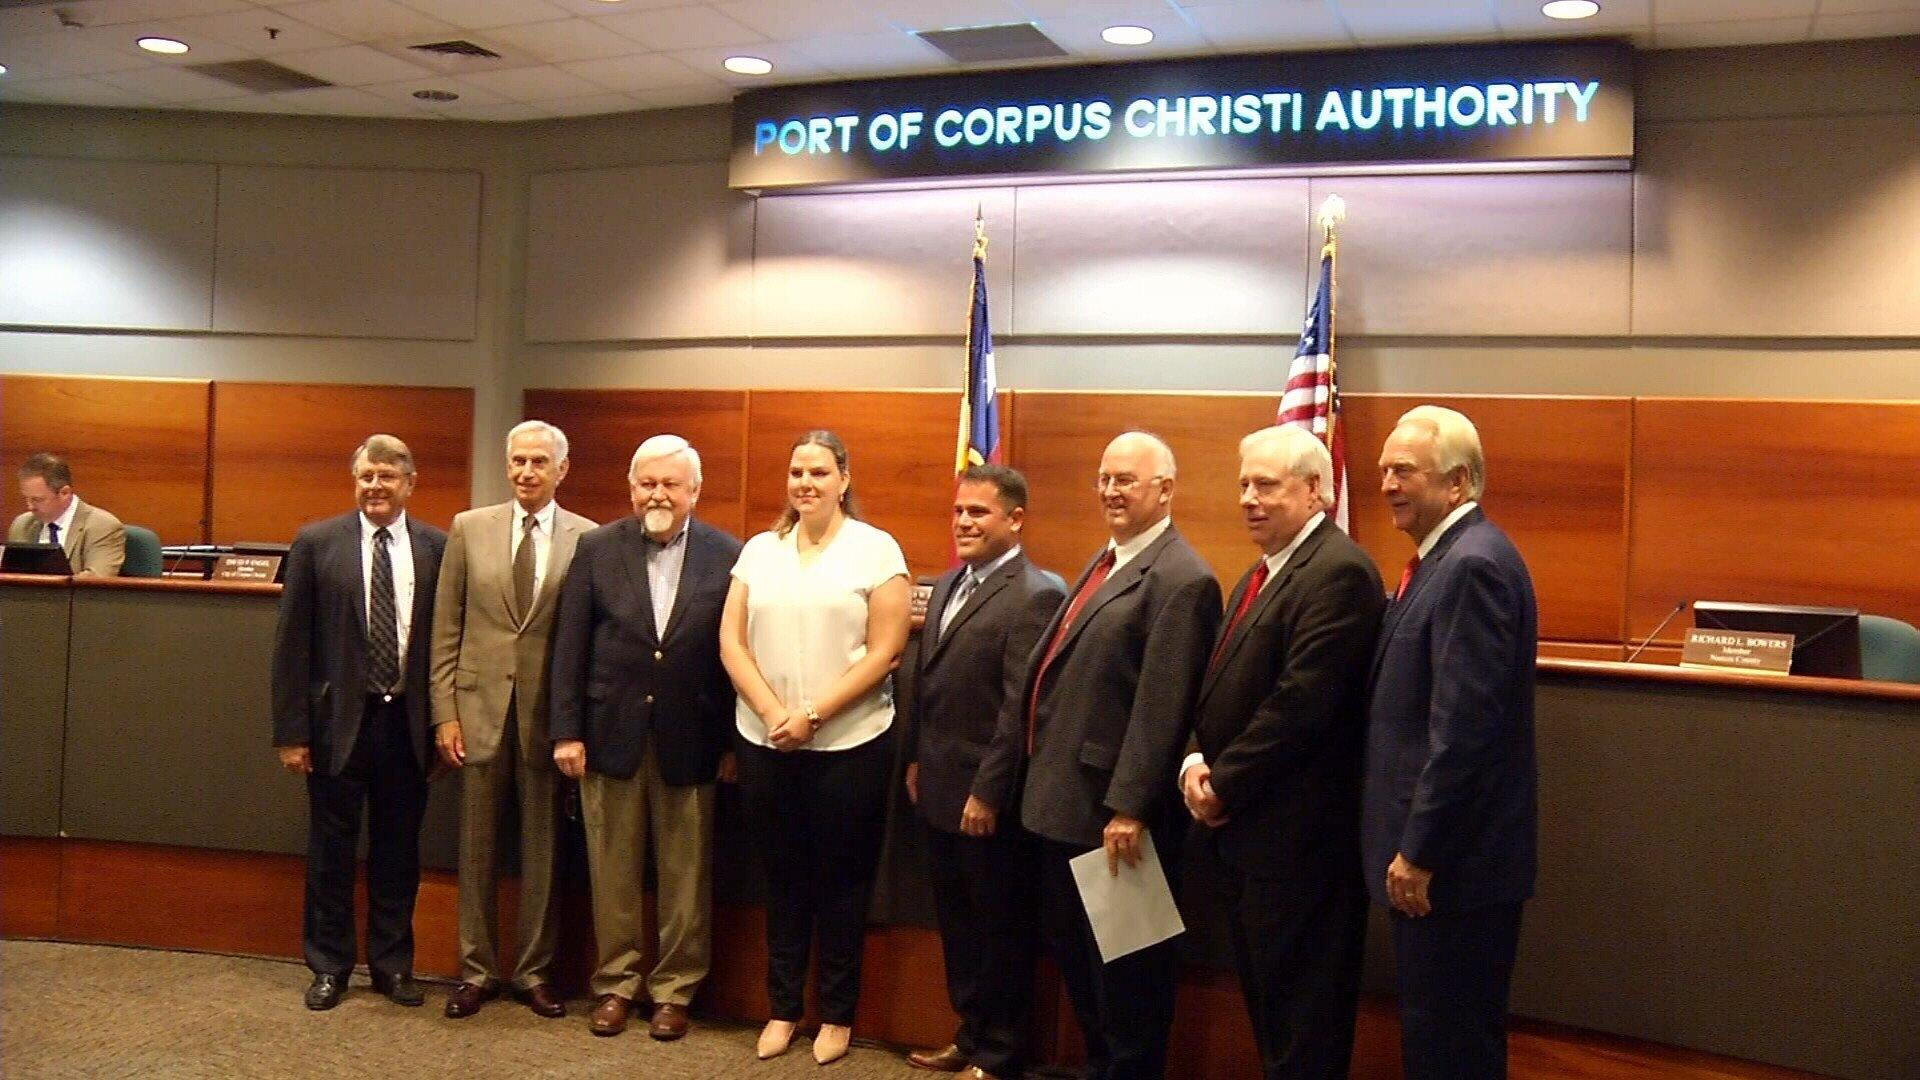 Captain Andrea Morrison took photos with the Port Commission after she was appointed.